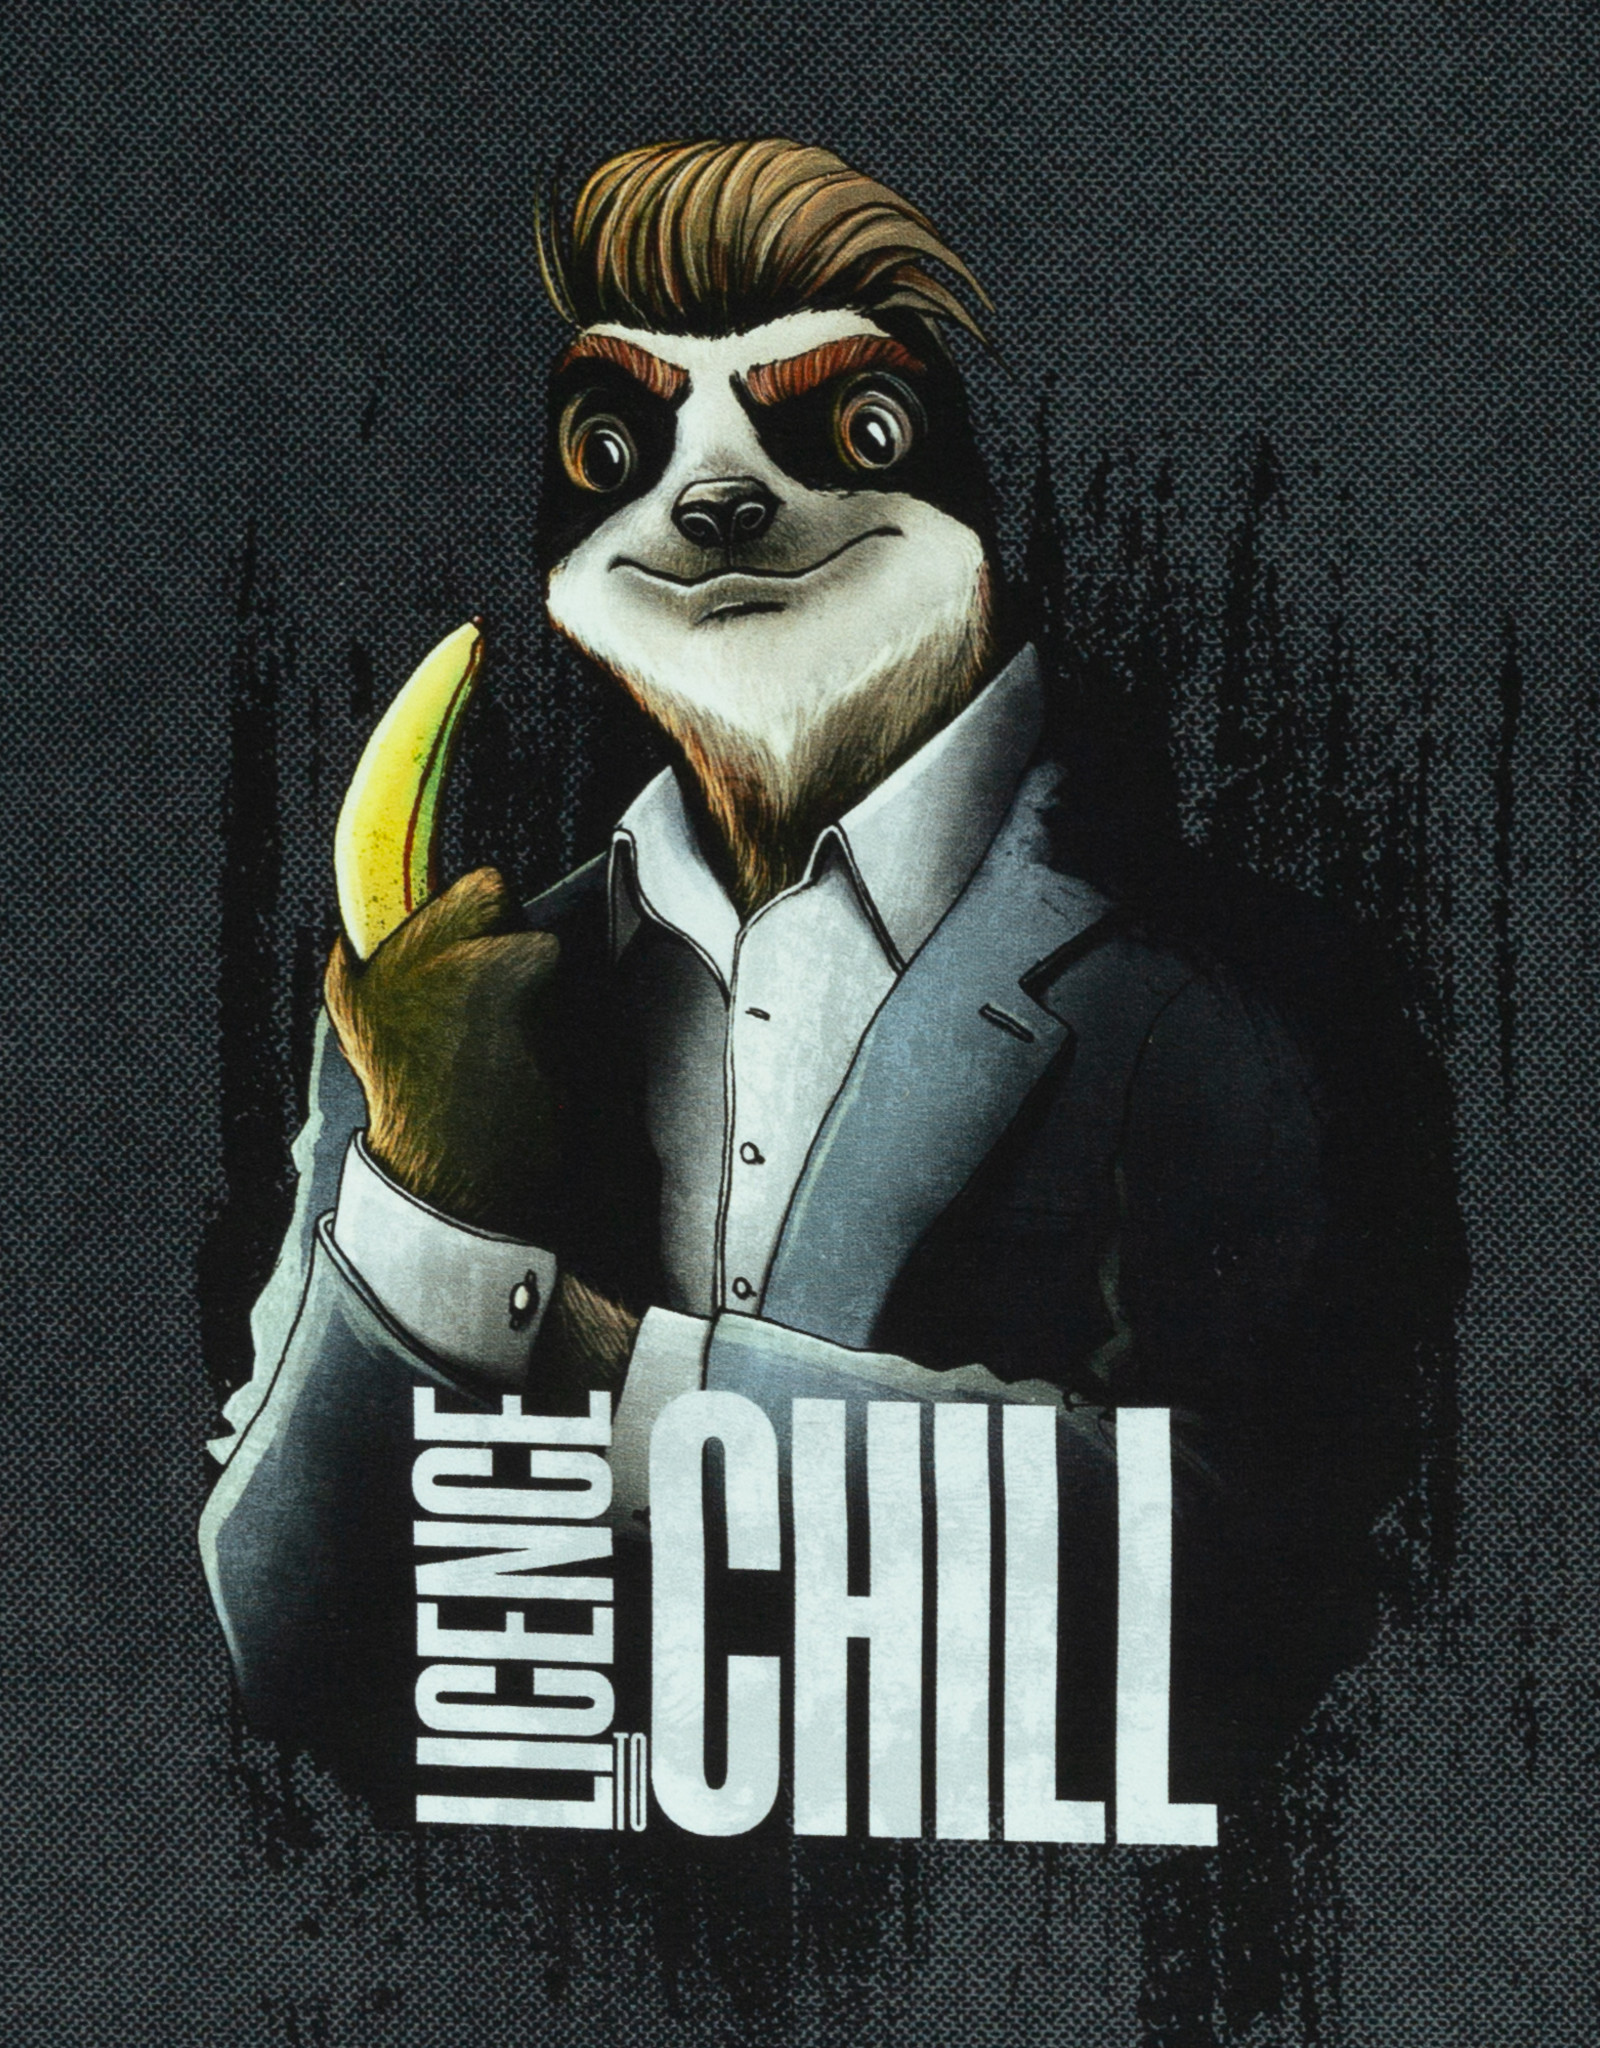 Licence to chill paneel